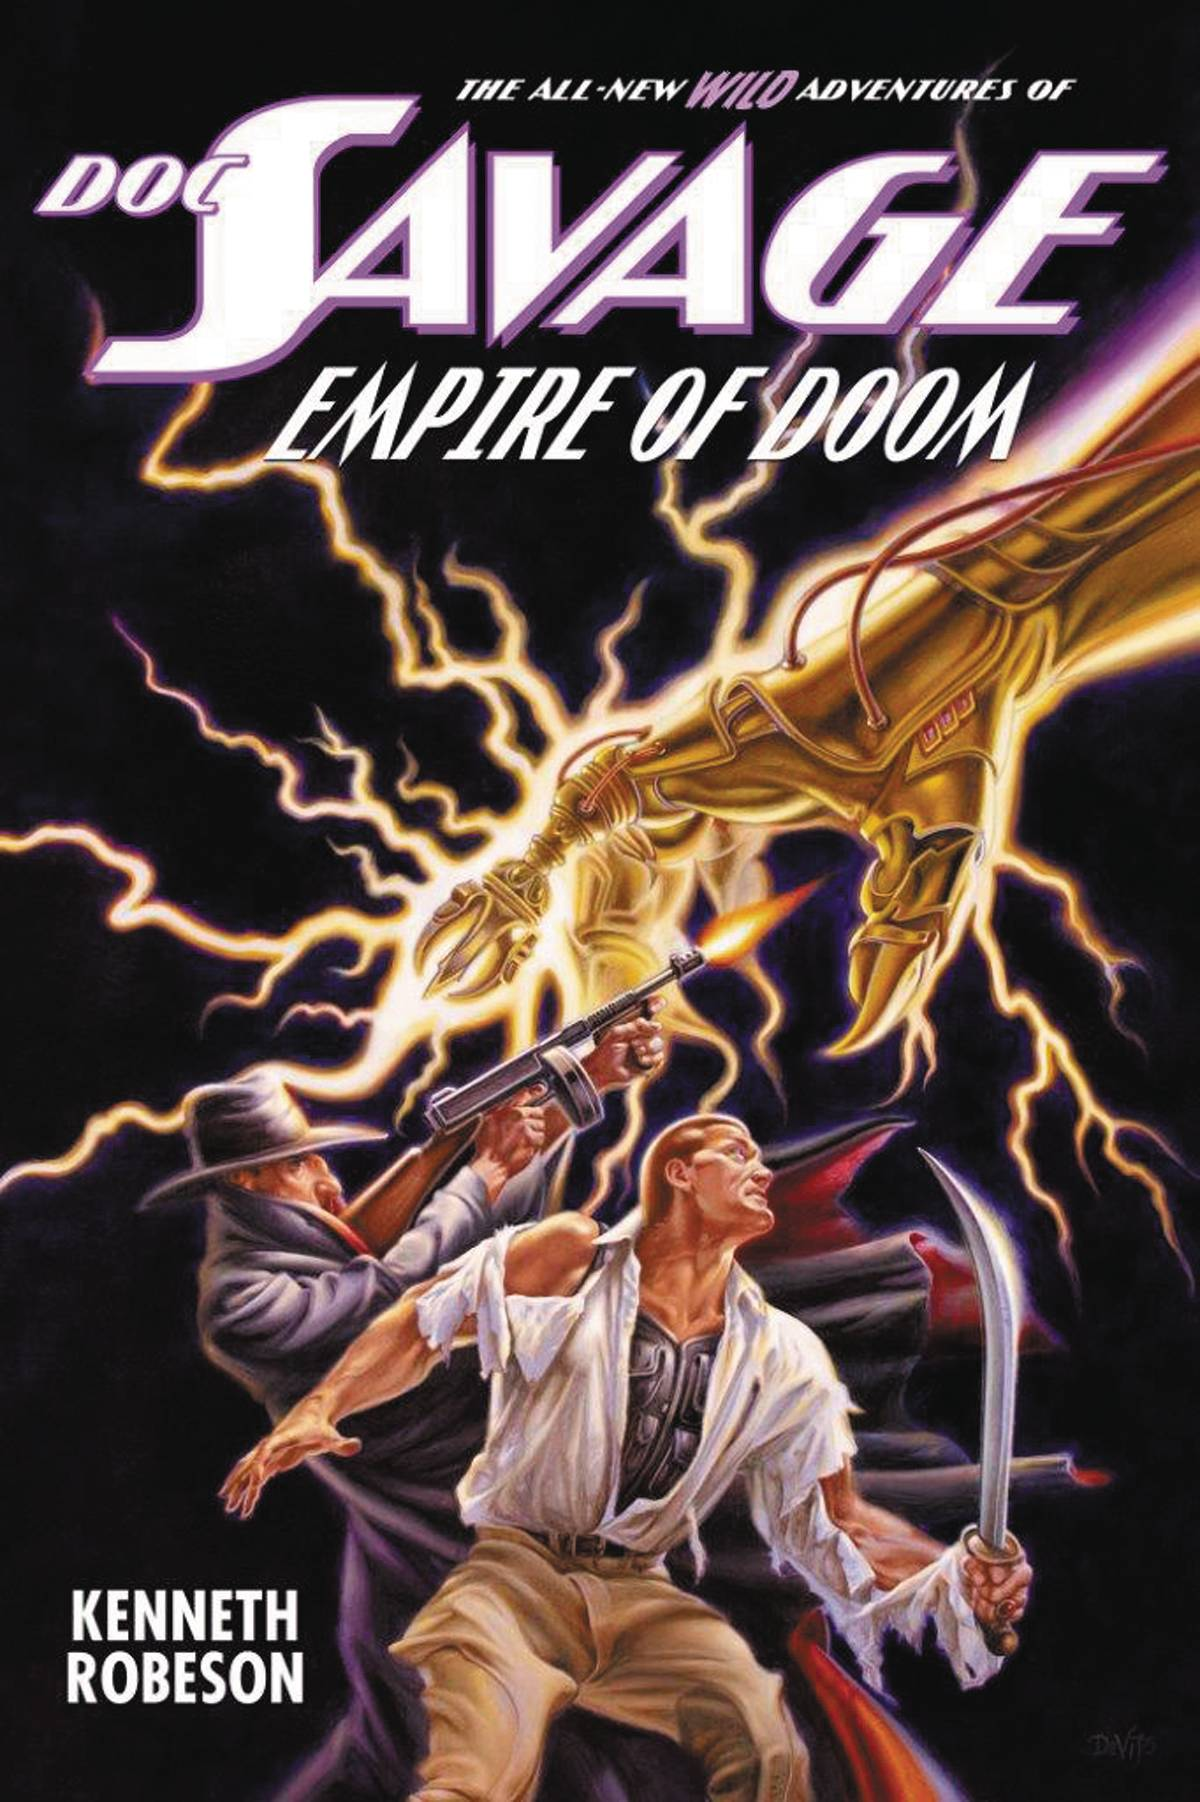 DOC SAVAGE NEW ADV SC 20 EMPIRE OF DOOM.jpg